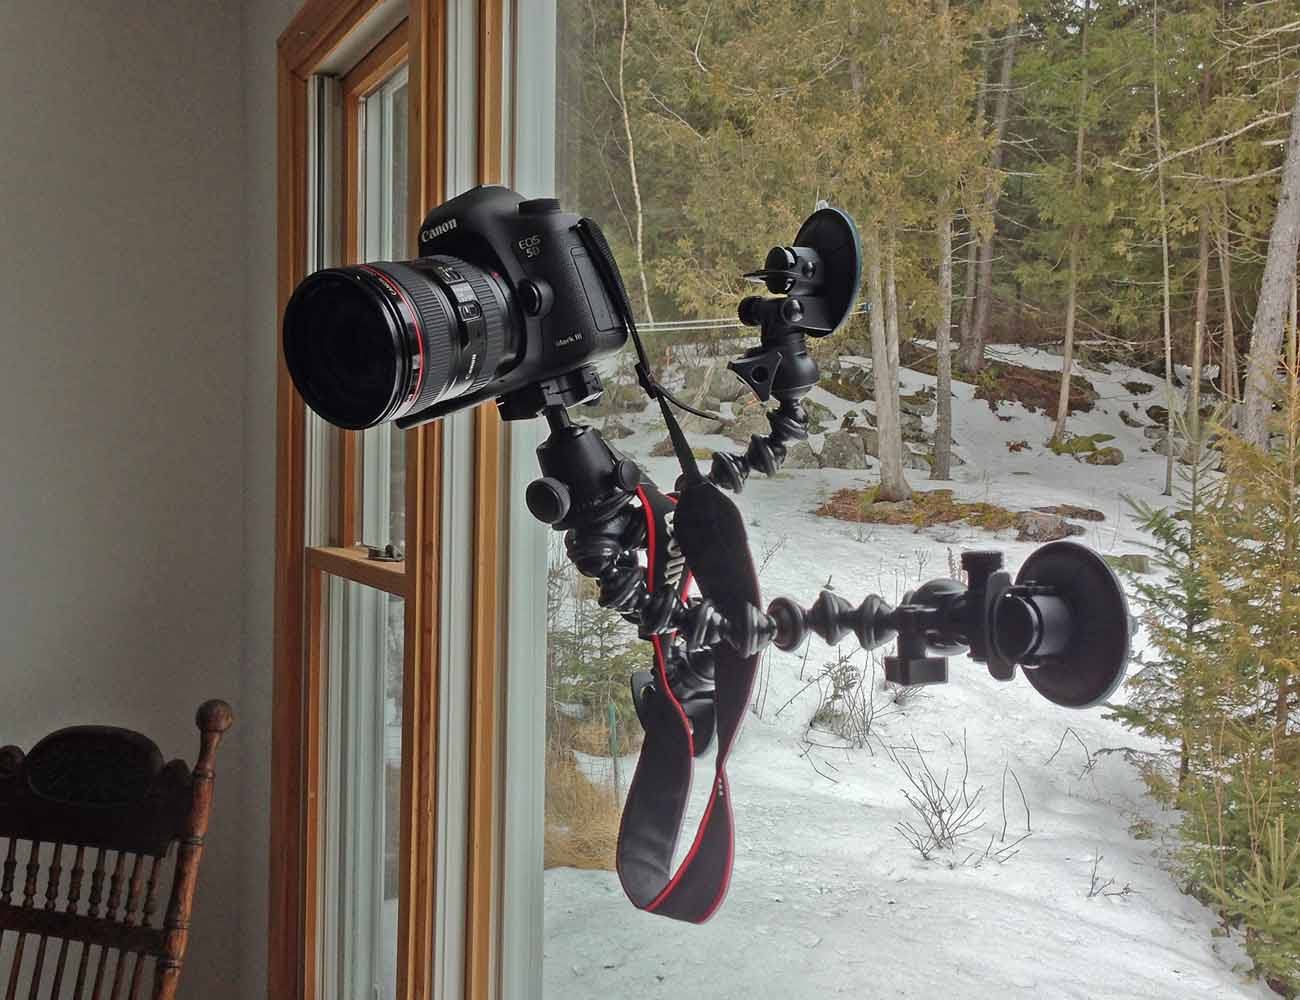 CineSquid+Suction+Cup+Camera+Mount